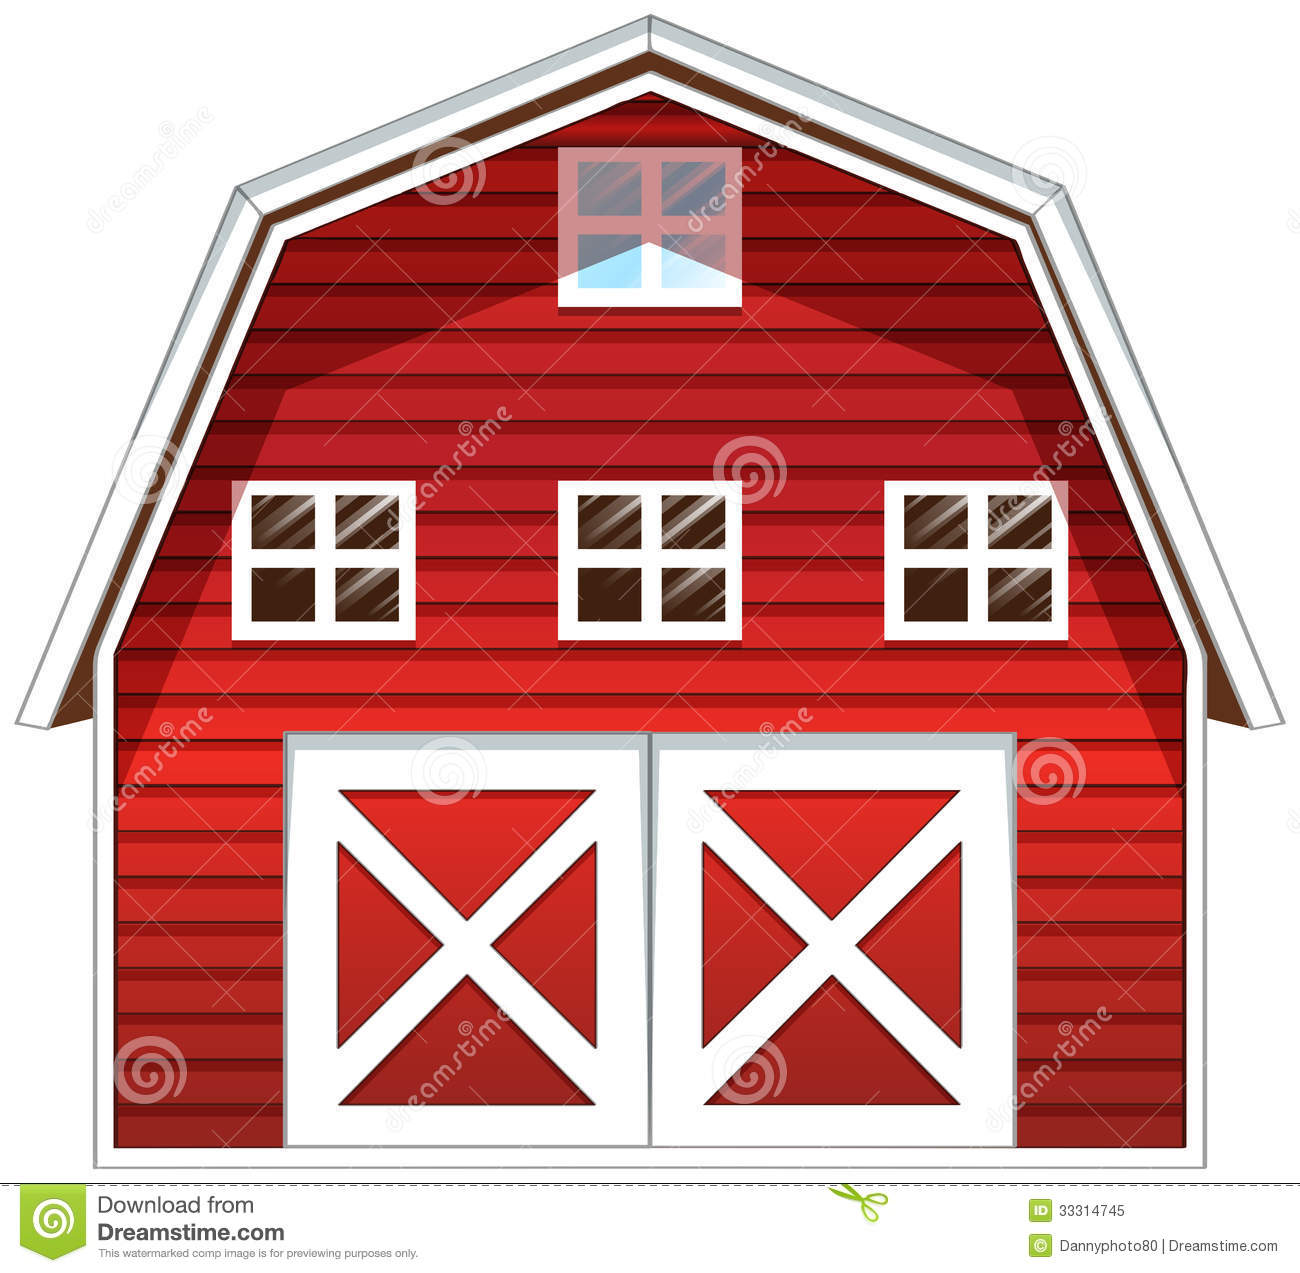 A Red Barn House Stock Illustration. Illustration Of Farm